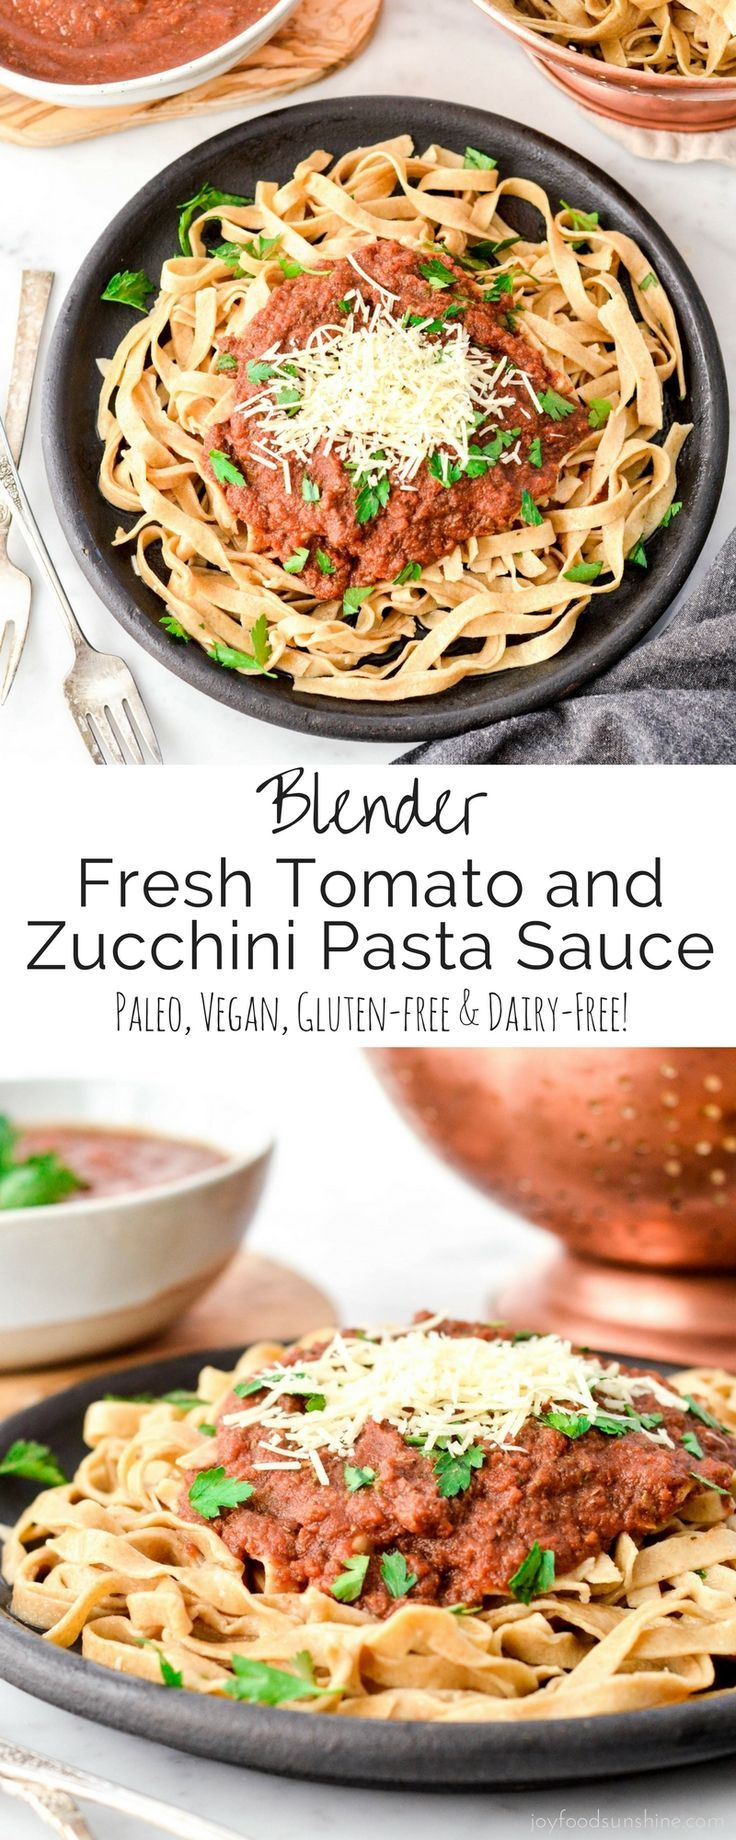 Fresh Tomato & Zucchini Pasta Sauce made in the blender! A versatile marinara sauce that is loaded with sneaky veggies! Vegan, paleo, gluten-free and dairy-free!